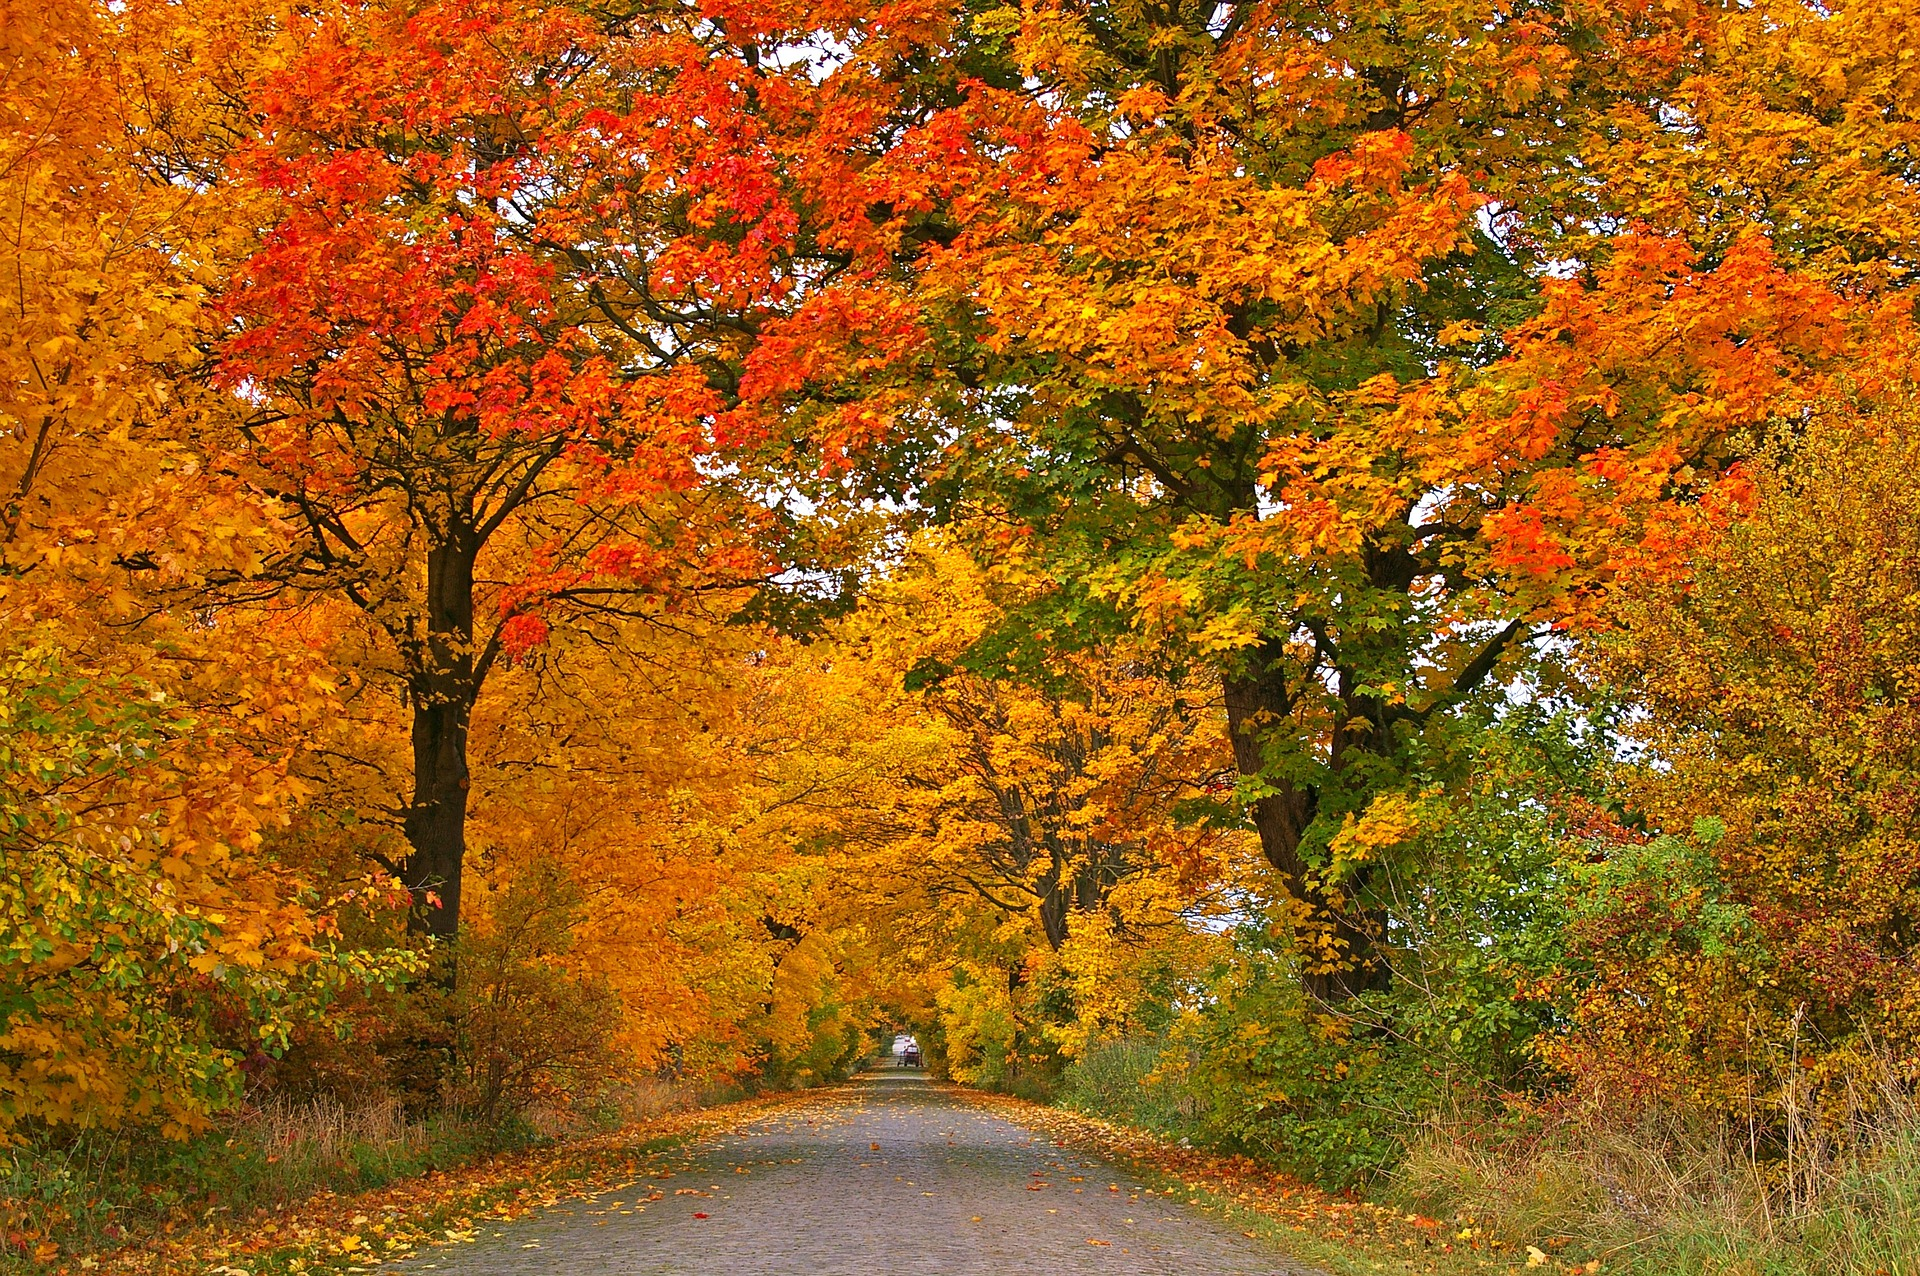 Wallpaper Images Of Fall Trees Lined Lake Four Must See Spots For Rhode Island Foliage Cliff Notes